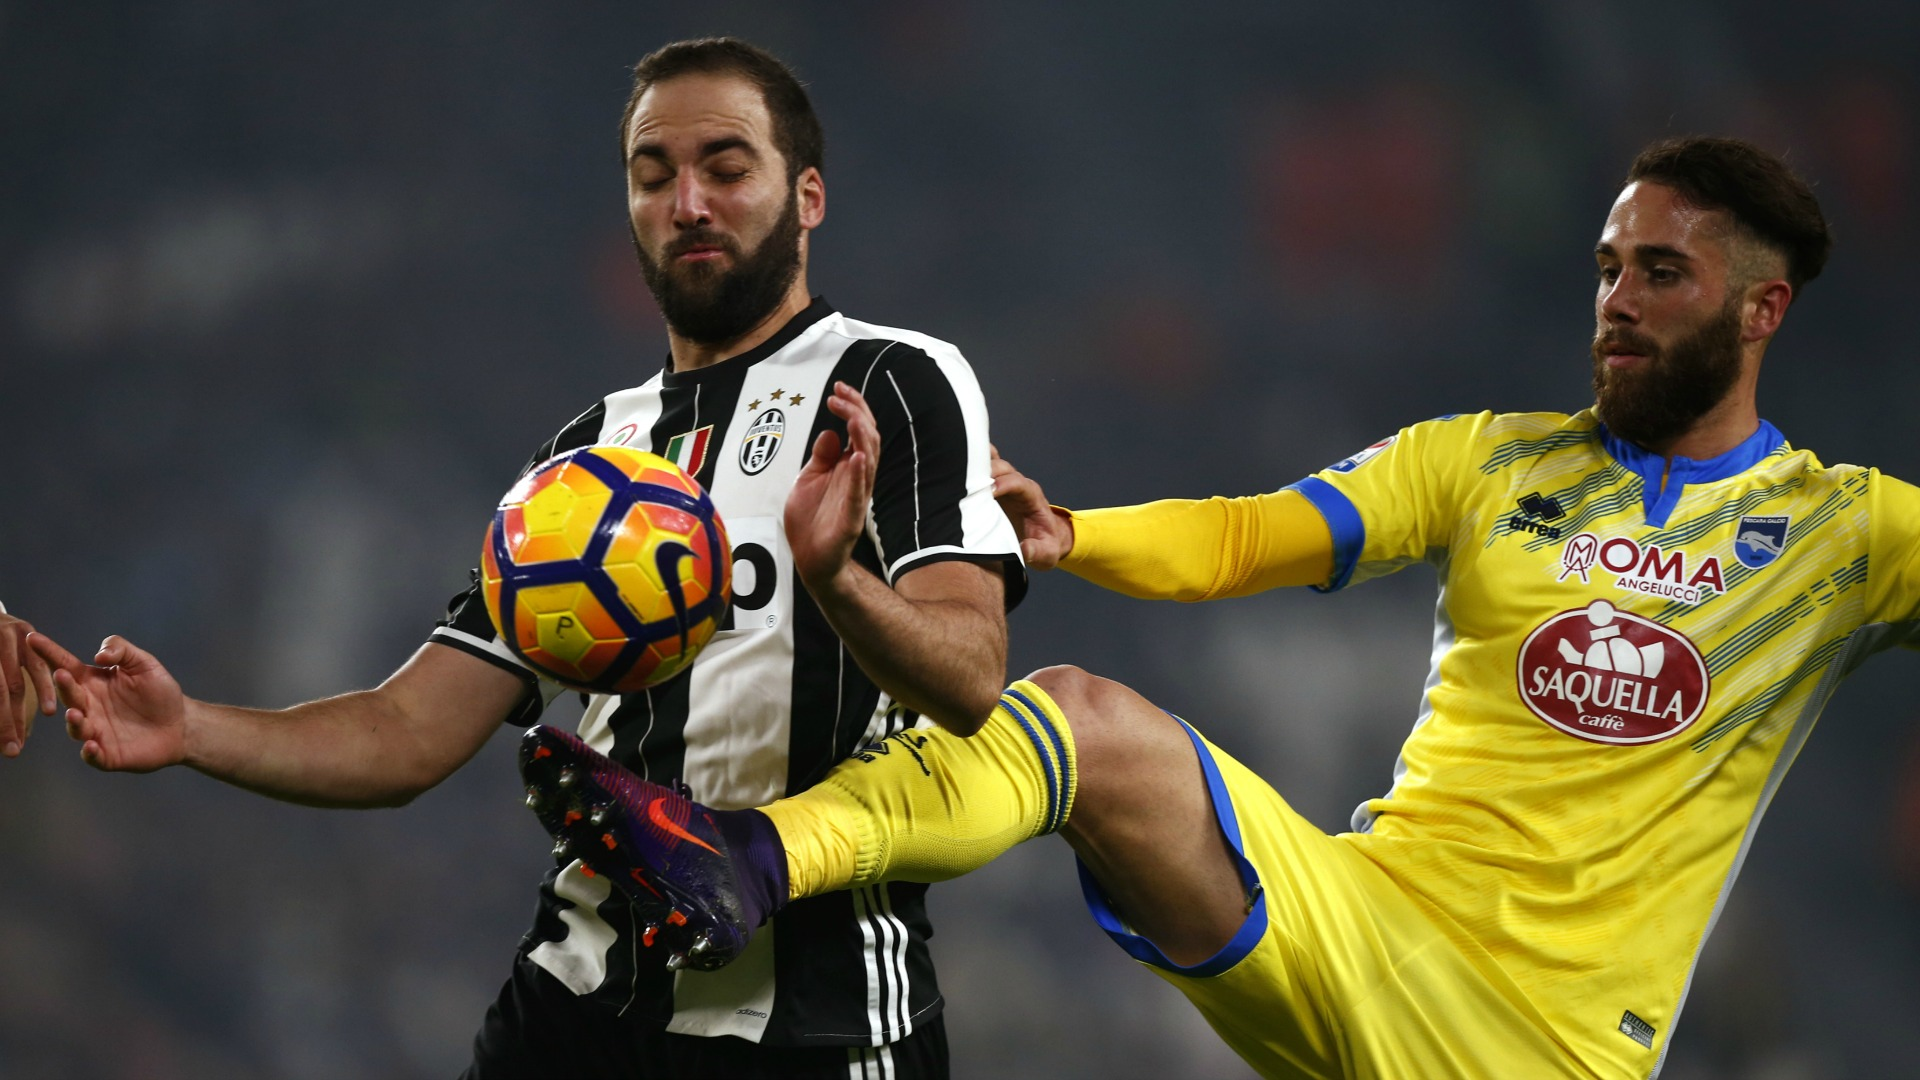 http://images.performgroup.com/di/library/GOAL/32/22/gonzalo-higuain-juventus-pescara-serie-a_/1wfoevpf7br8218fa5ssjebo36.jpg